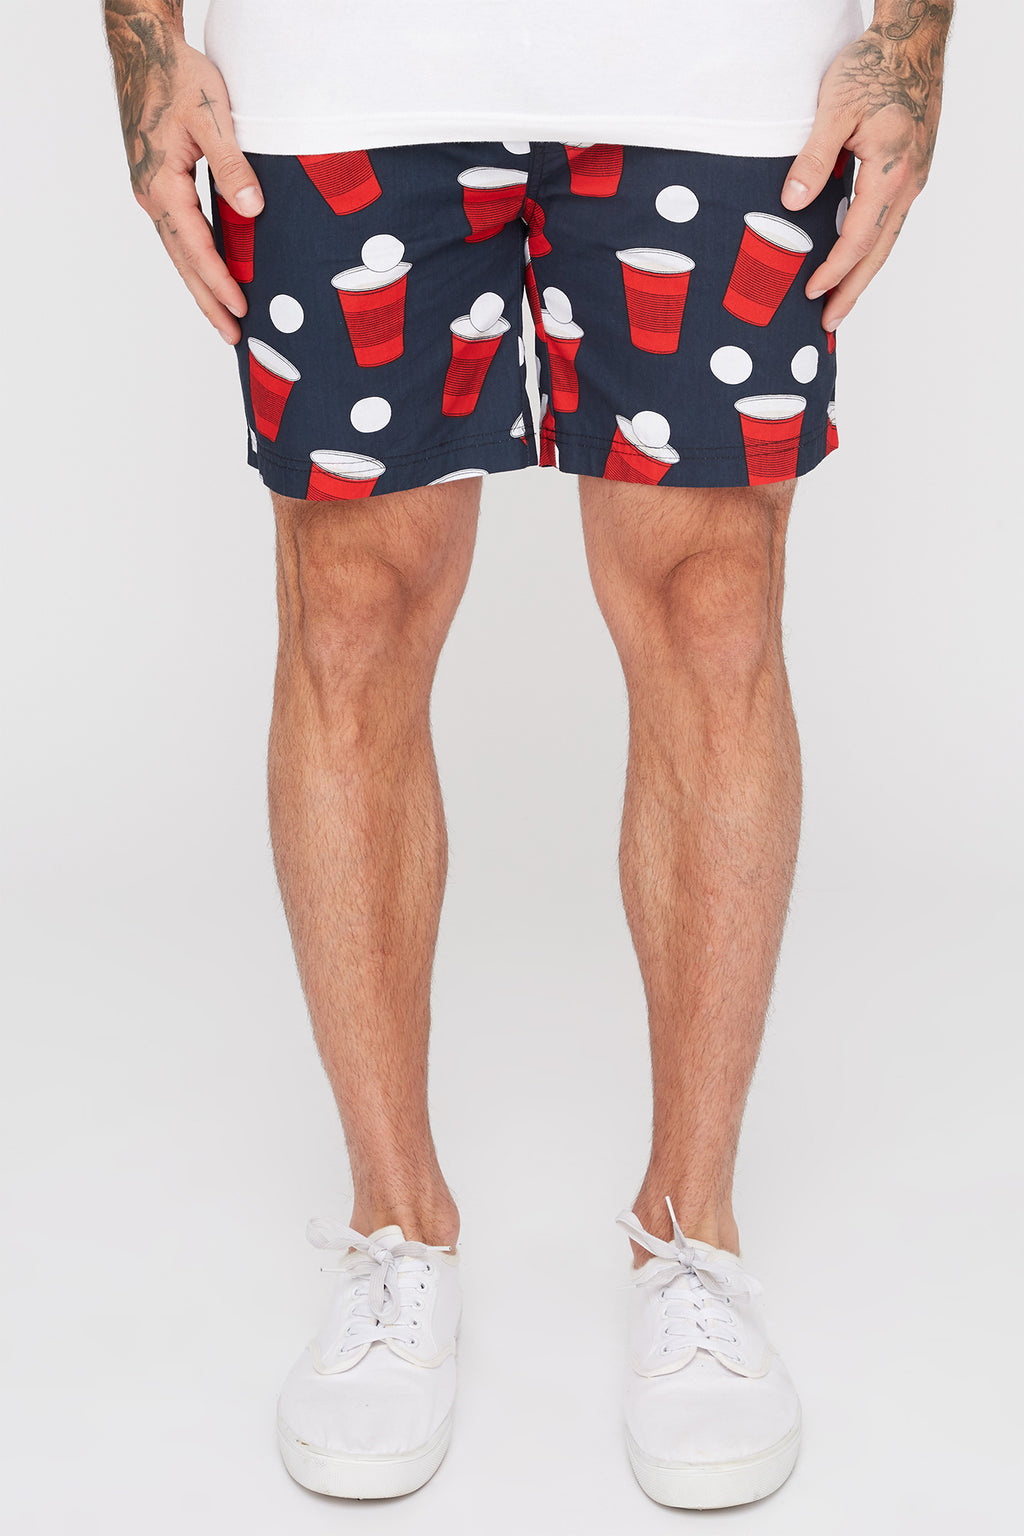 West49 Mens Red Dixie Cup Print Pull-On Shorts